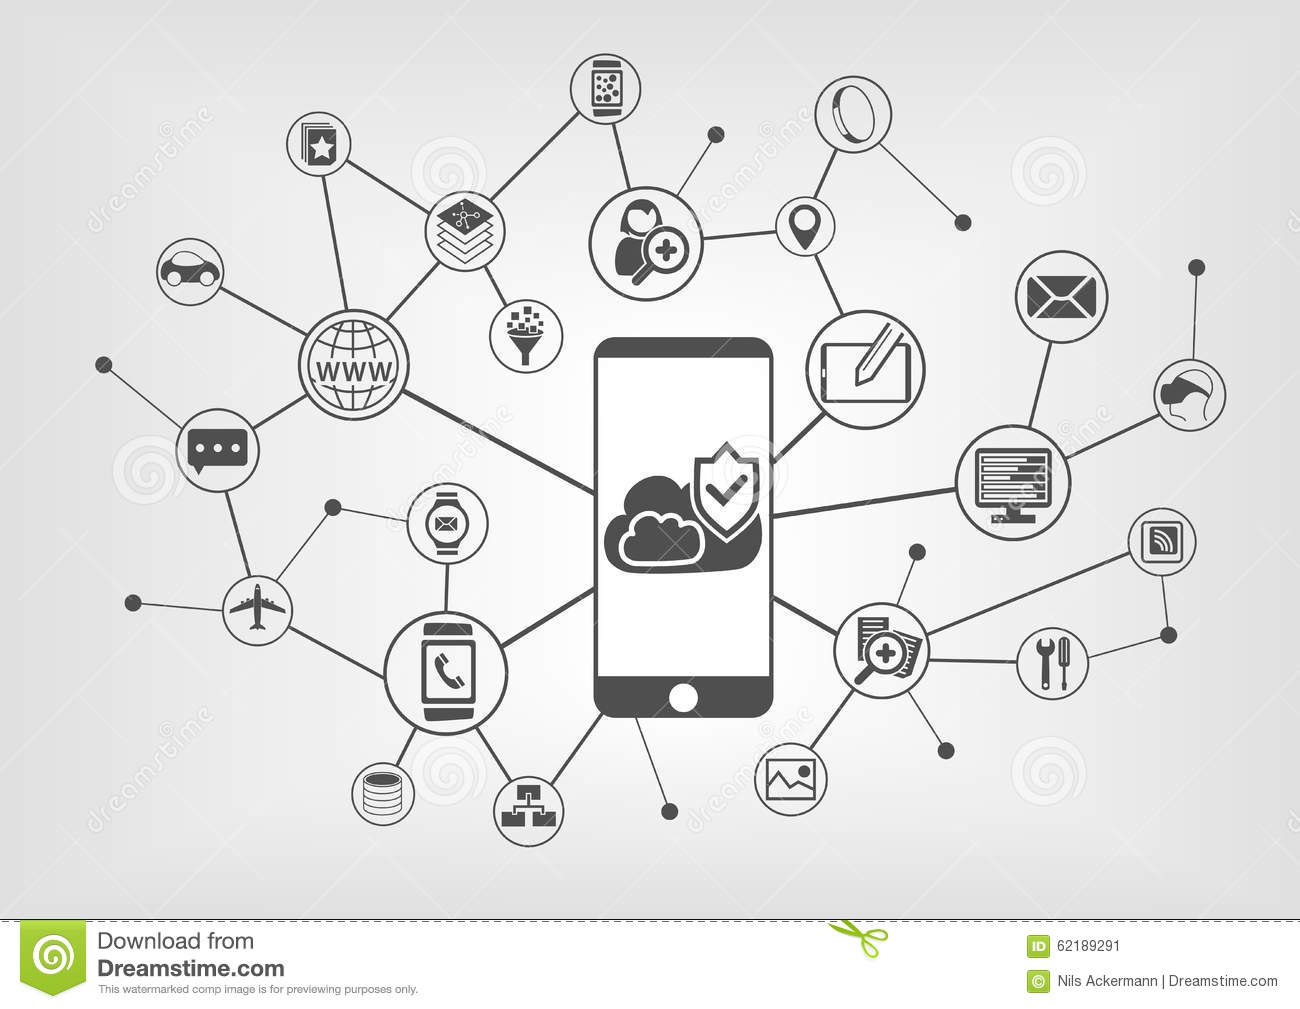 Cloud computing security concept for smart phones. Vector illustration background